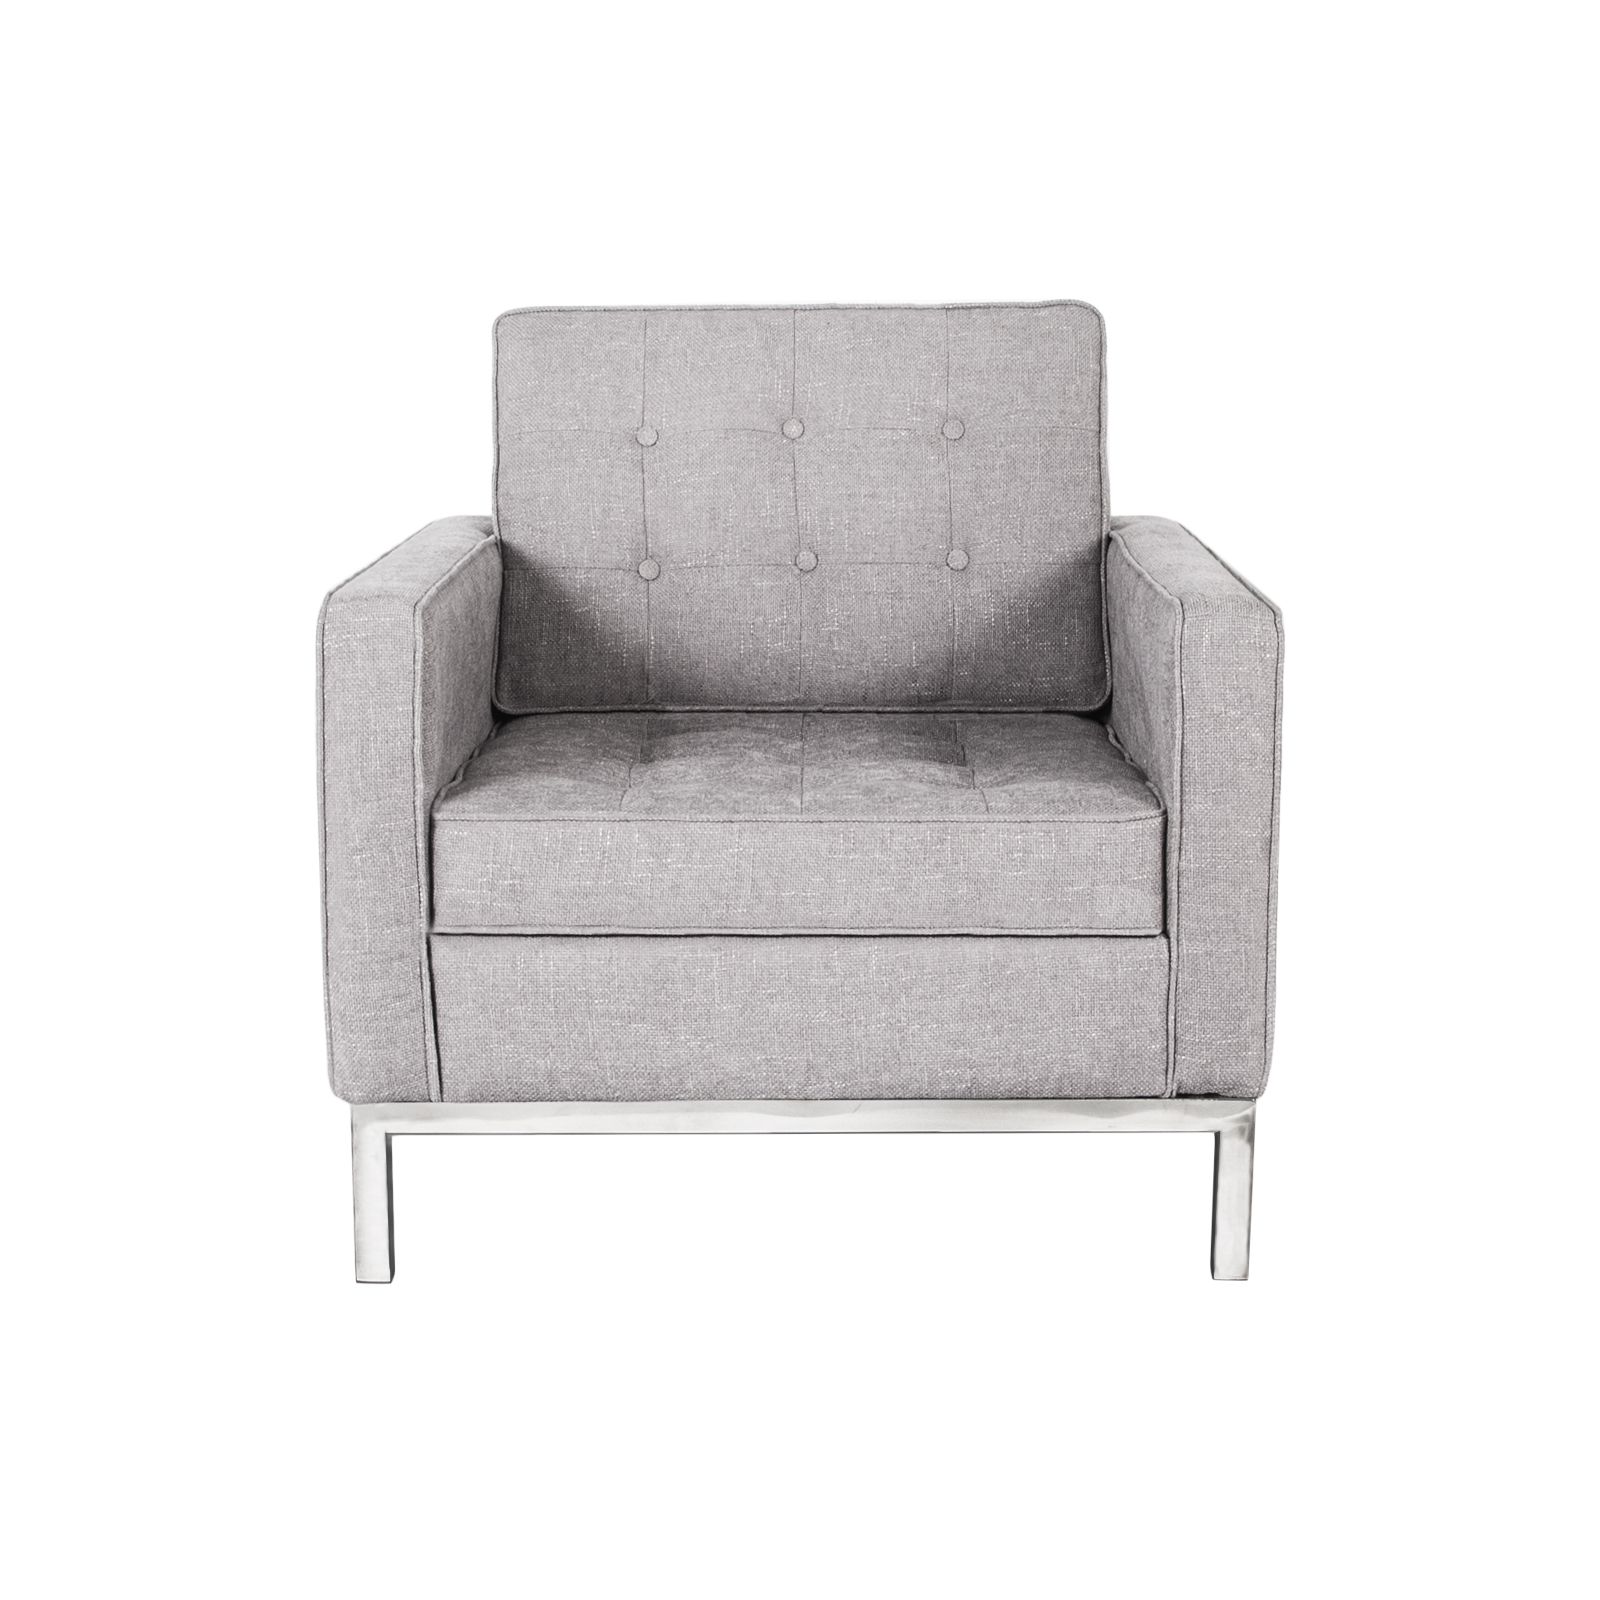 Grey Lounge Chair Florence Knoll Lounge Chair Rentals Event Furniture